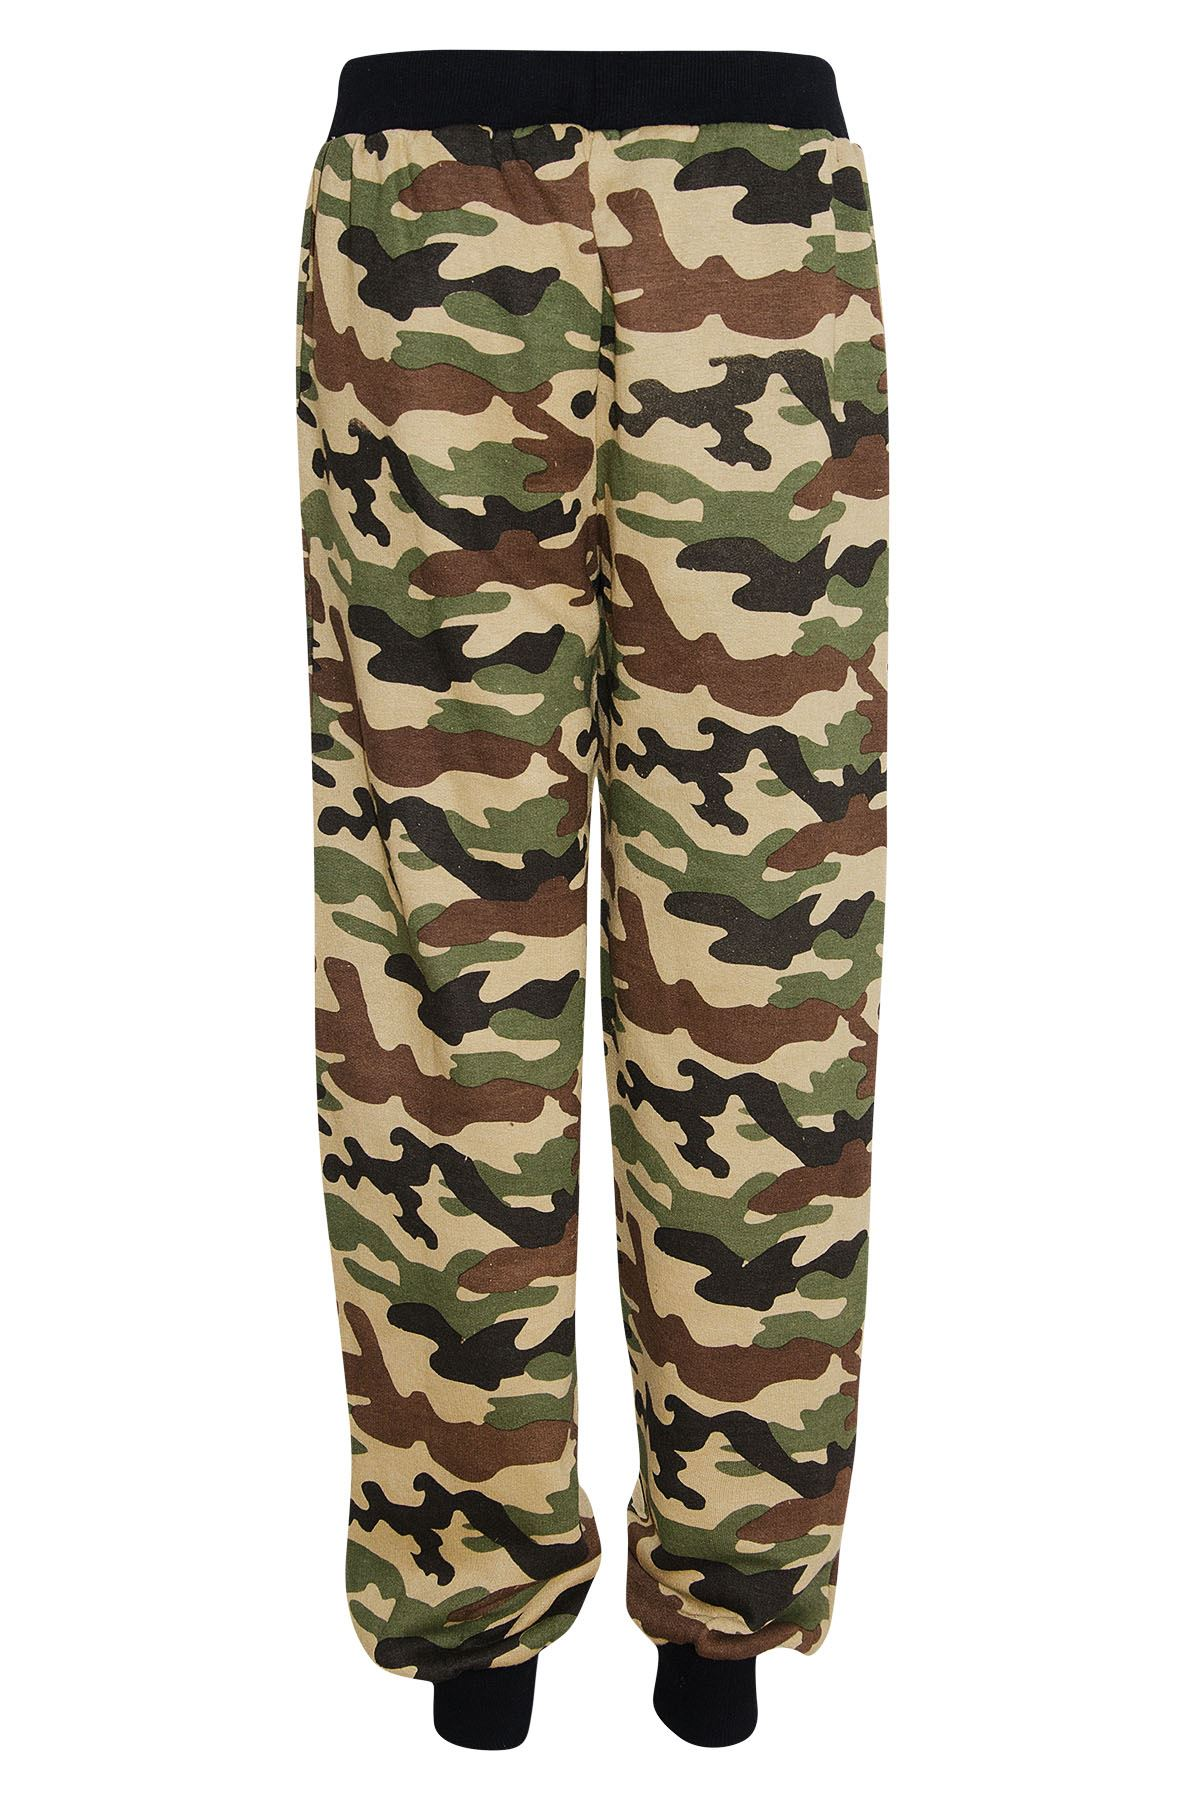 Creative Camouflage Cargo Pants Women Military Fashion Casual Sportswear Loose